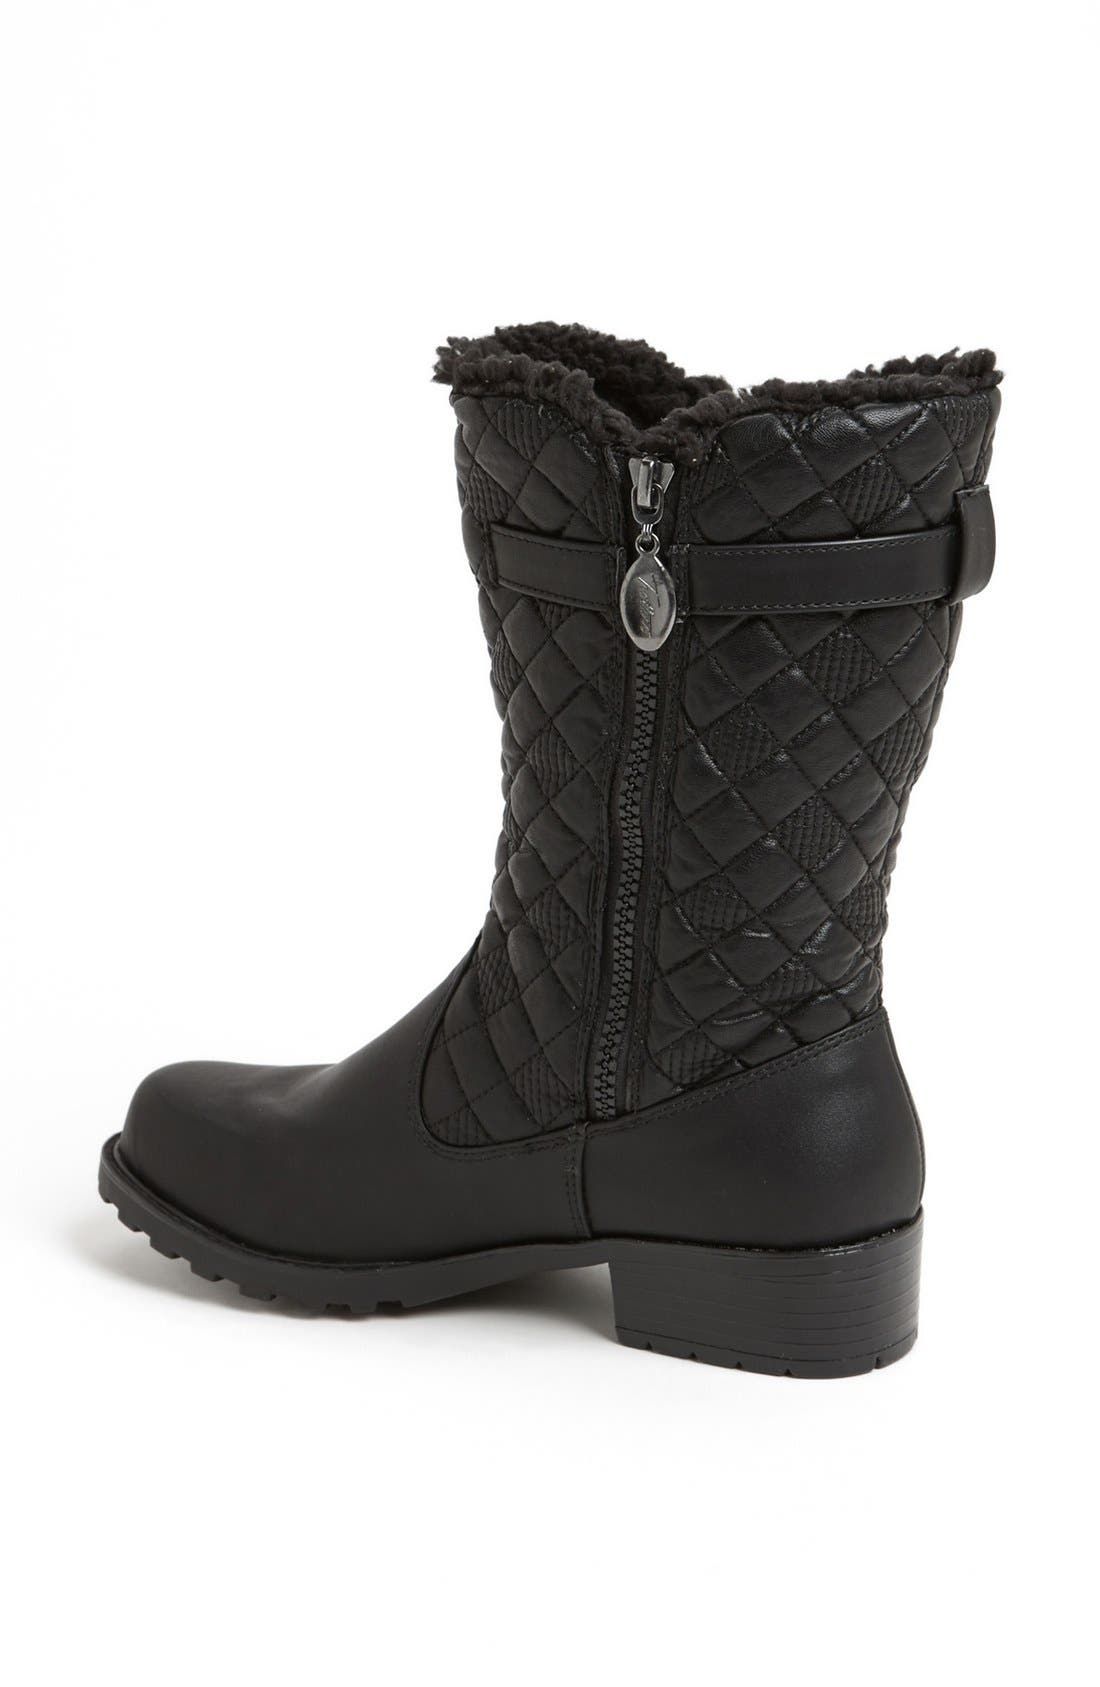 'Blizzard III' Boot,                             Alternate thumbnail 2, color,                             BLACK FAUX LEATHER